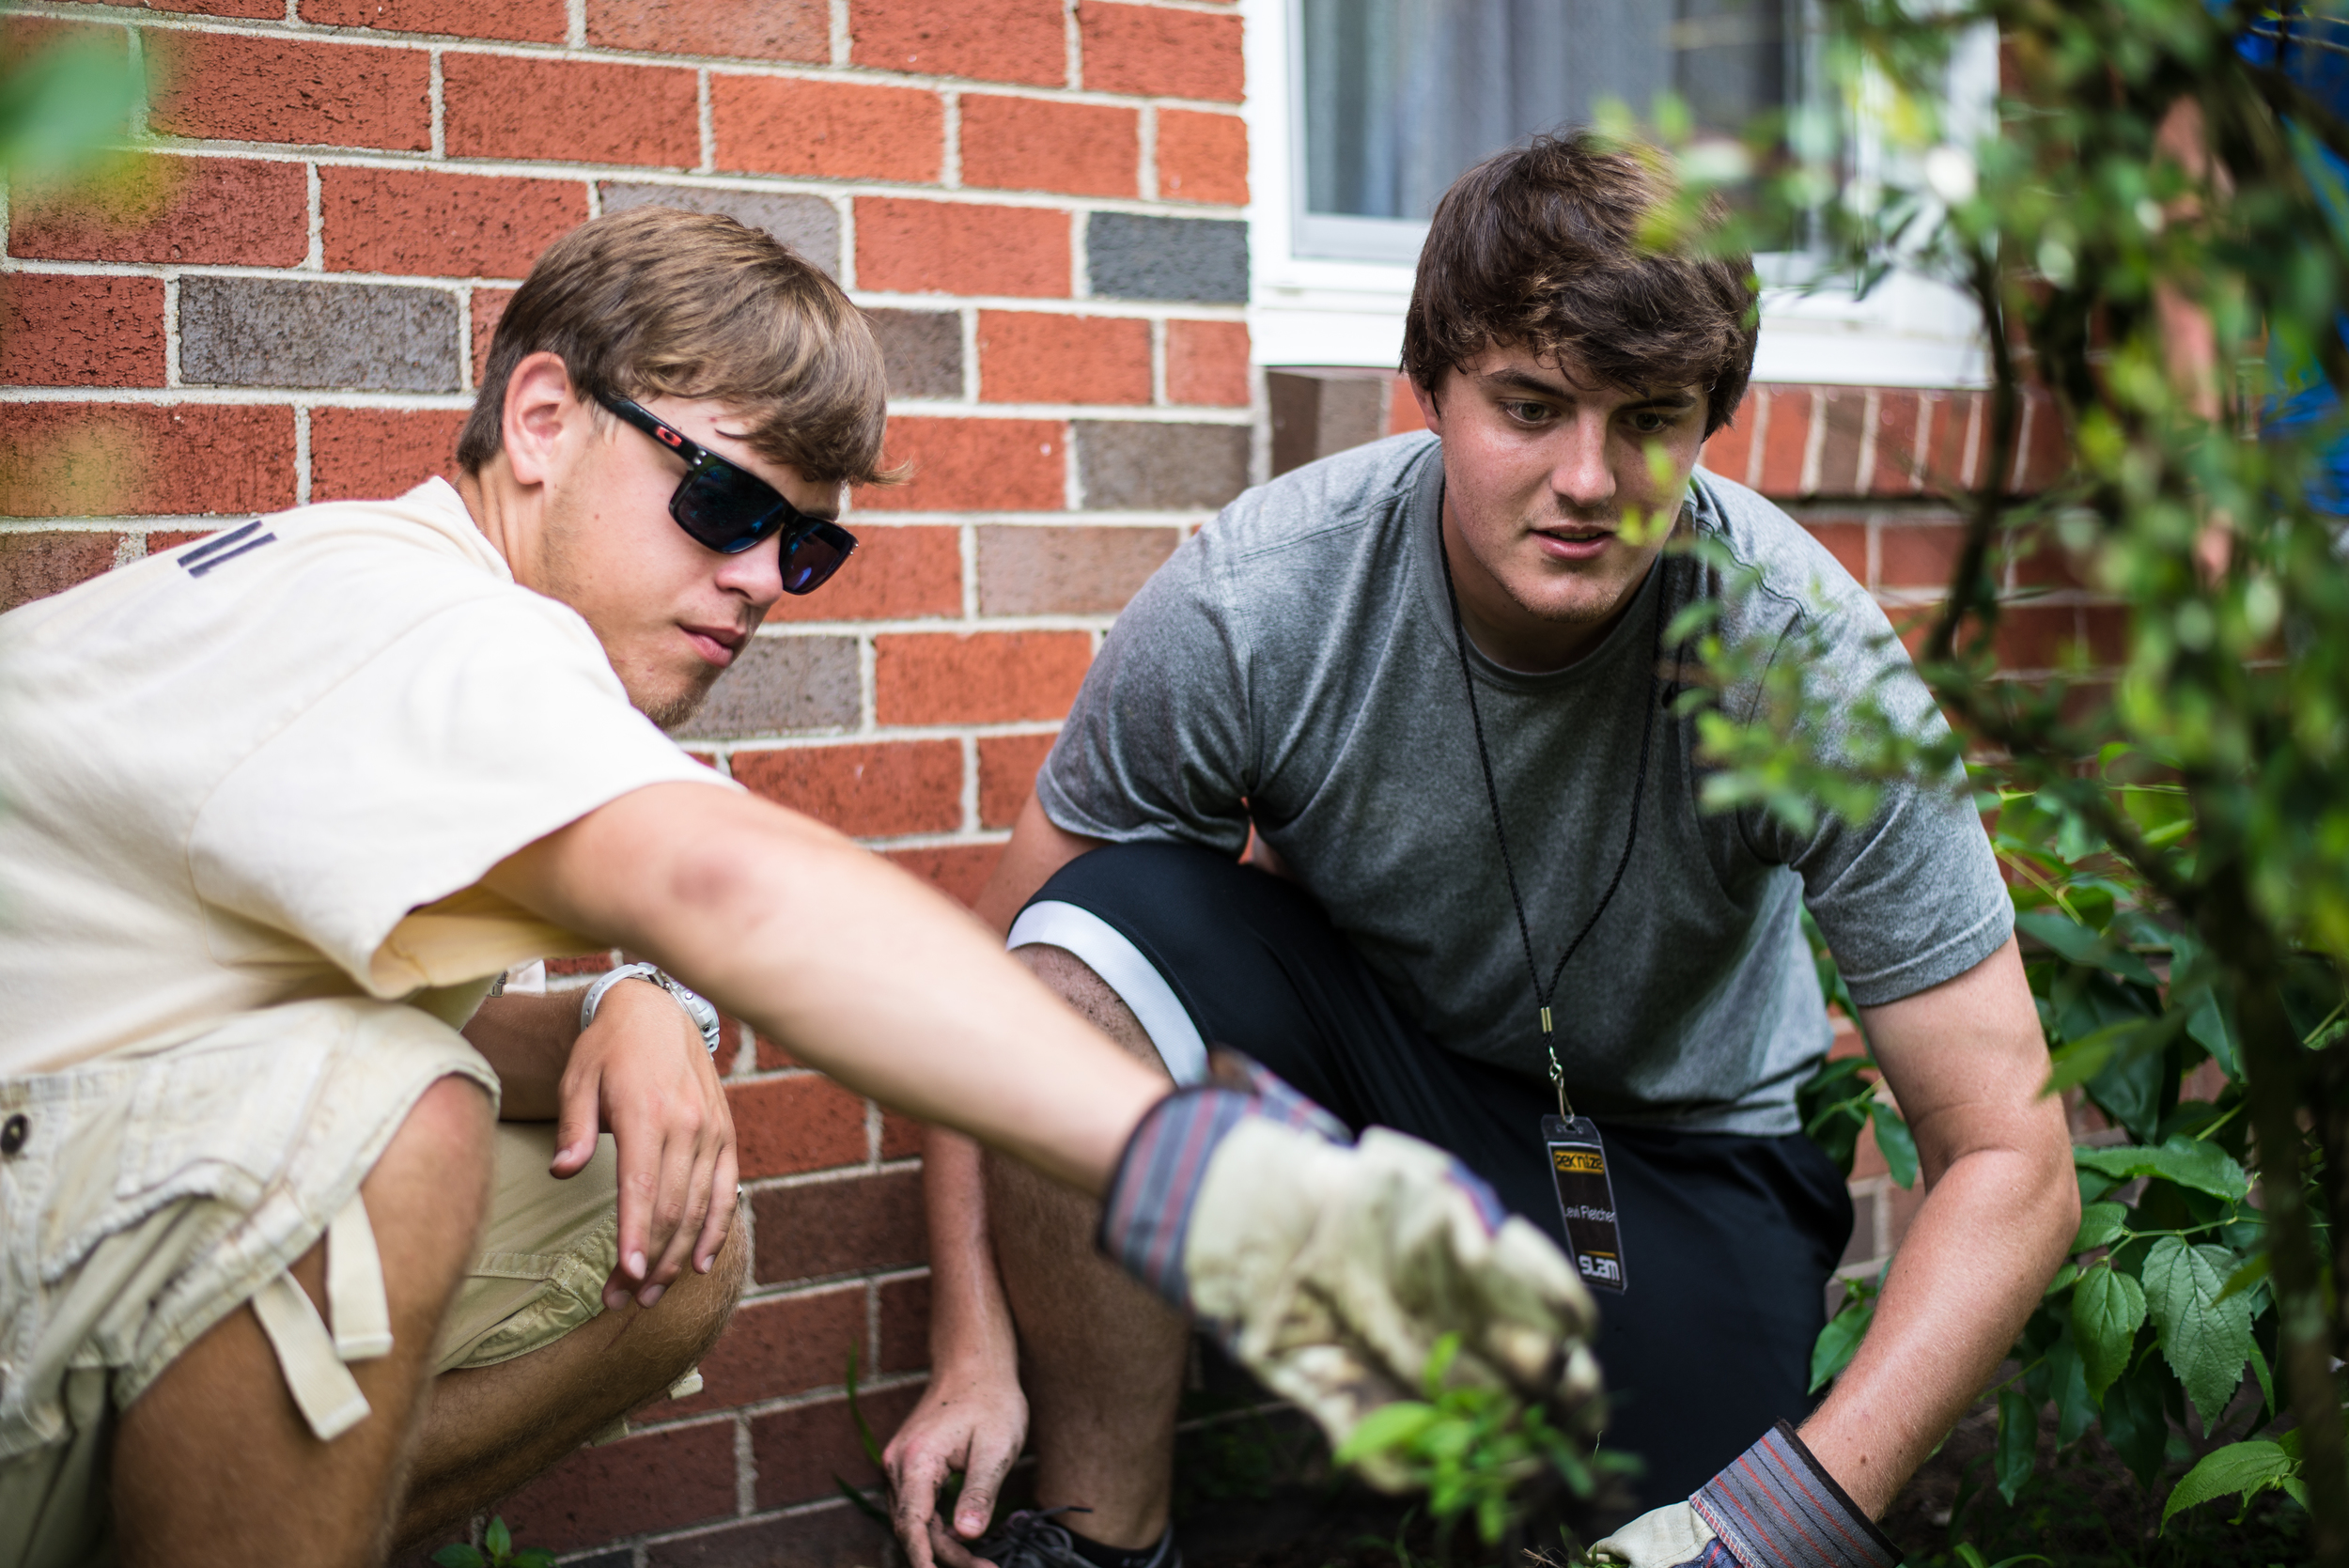 Young people not only spend time in a community garden, but also weeding and planting in the yards of elderly and widowed individuals. They learn the practicality of food production, alongside the simple pleasure brought to a grandmother when she receives flowers in place of weeds.